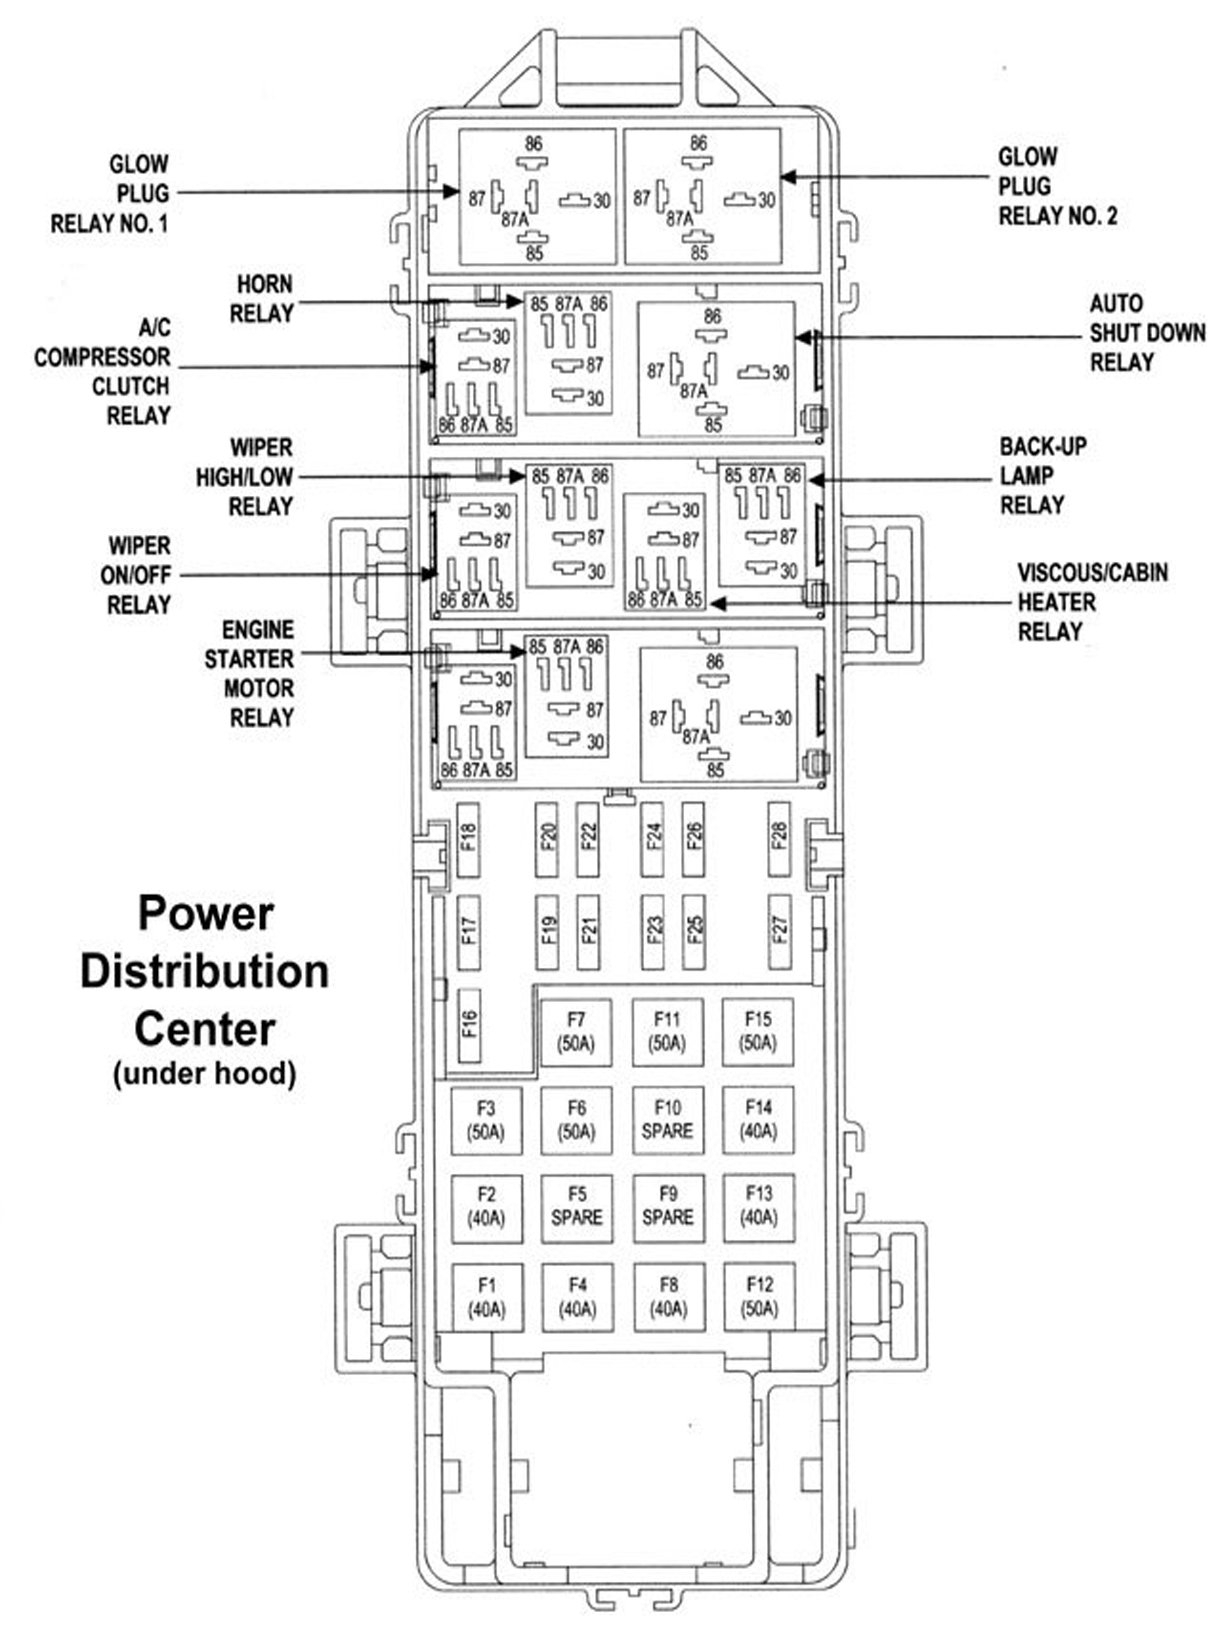 jeep grand cherokee wj 1999 to 2004 fuse box diagram cherokeeforum within 1999 jeep grand cherokee parts diagram jeep grand cherokee wj 1999 to 2004 fuse box diagram 1999 jeep grand cherokee fuse box diagram at crackthecode.co